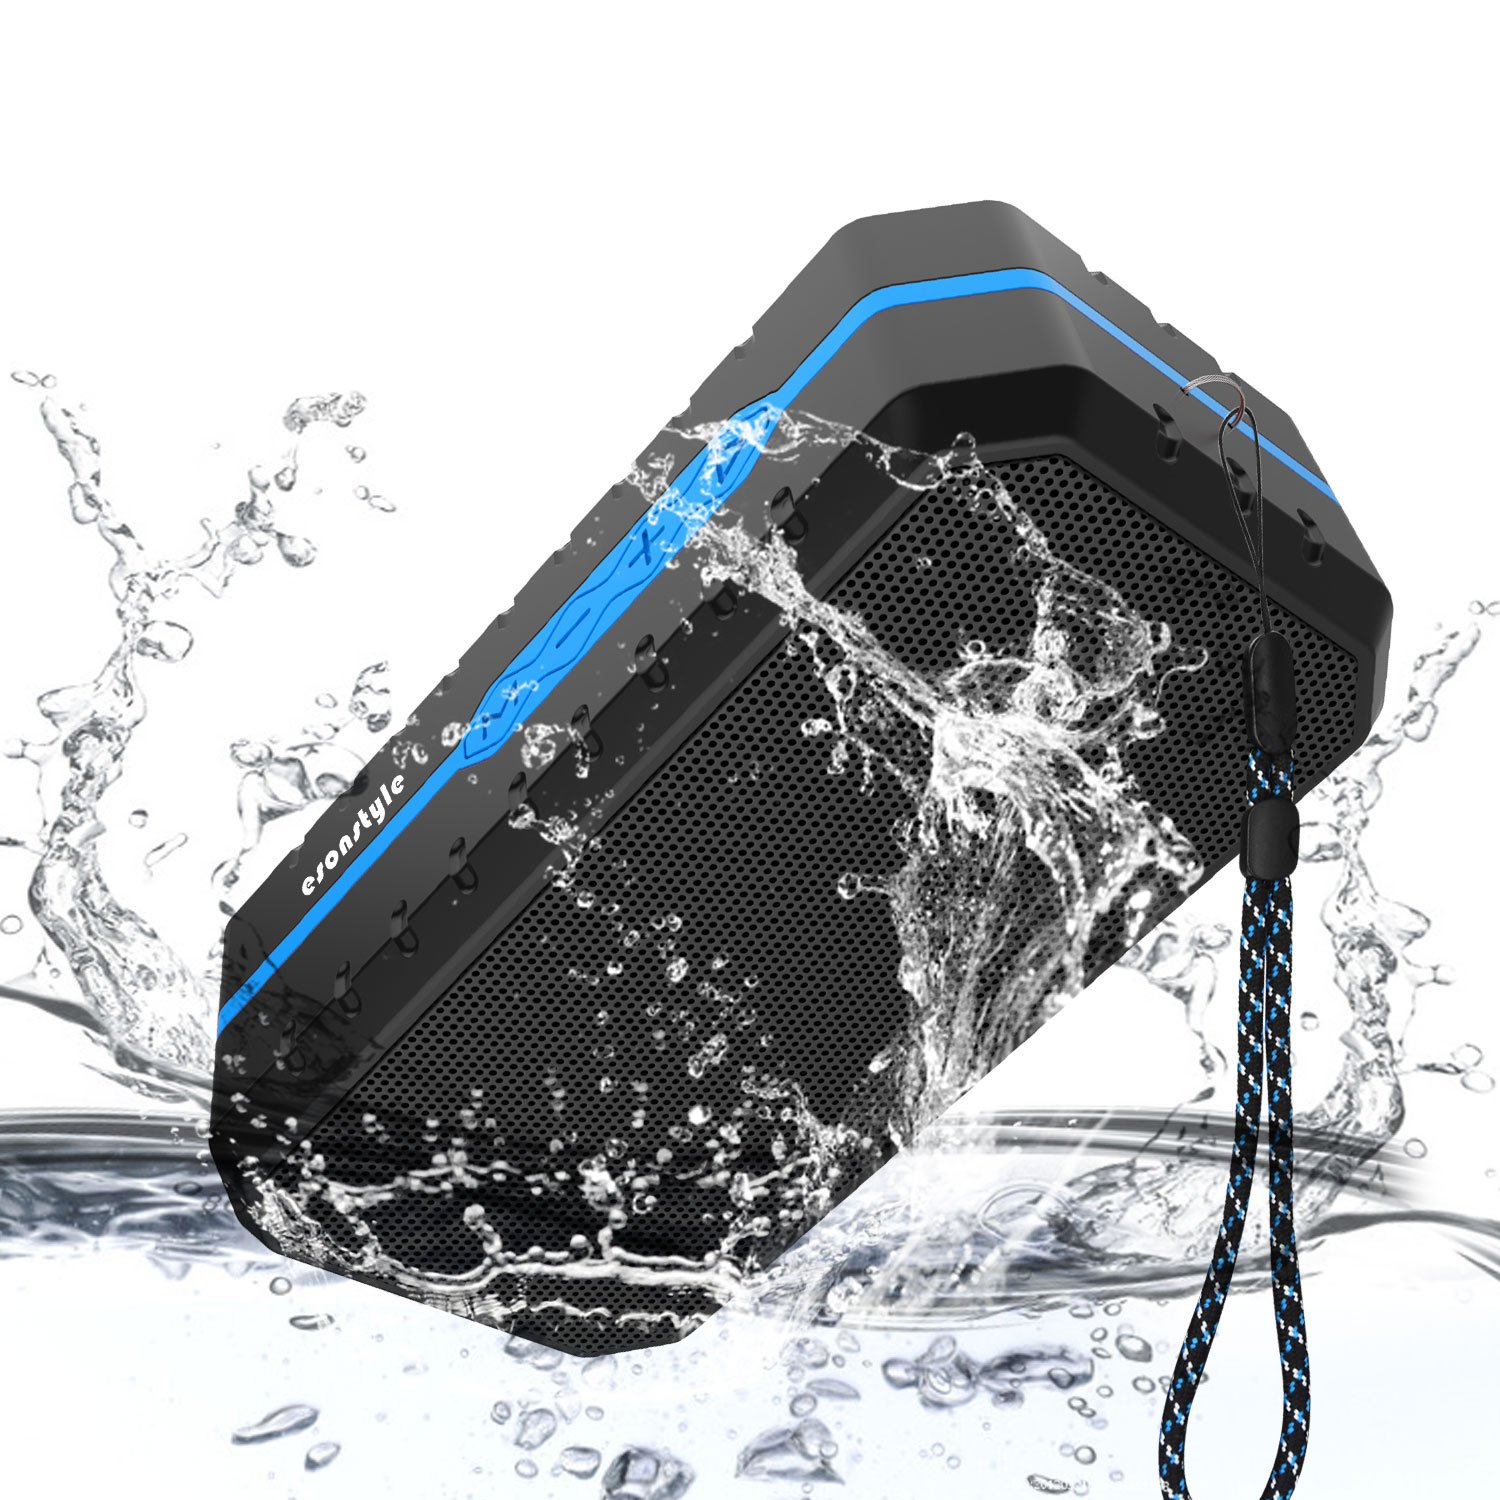 Portable Bluetooth Speaker,Esonstyle Waterproof Outdoor Wireless Speaker with 1800MAH Battery, Build-in Microphone,3.5mm Audio Input, Micro SD and USB Port for Smartphone,Tablet & More (blue) by esonstyle